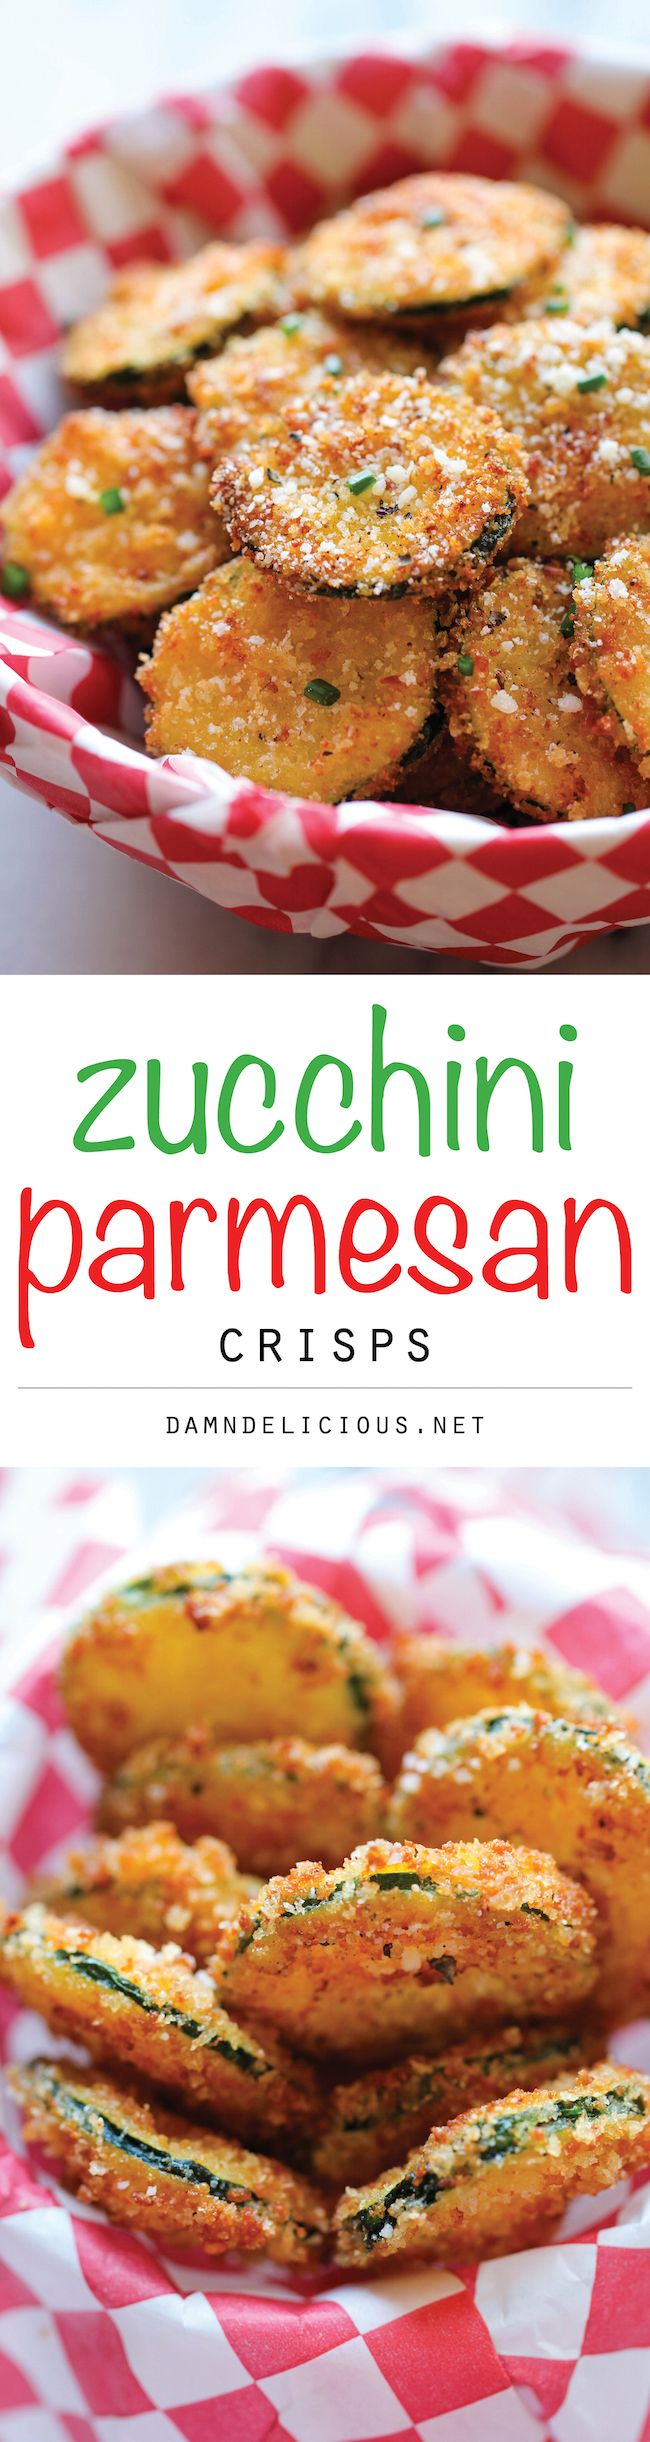 Zucchini Parmesan Crisps - A healthy snack that's incredibly crunchy, crispy and .. addicting!